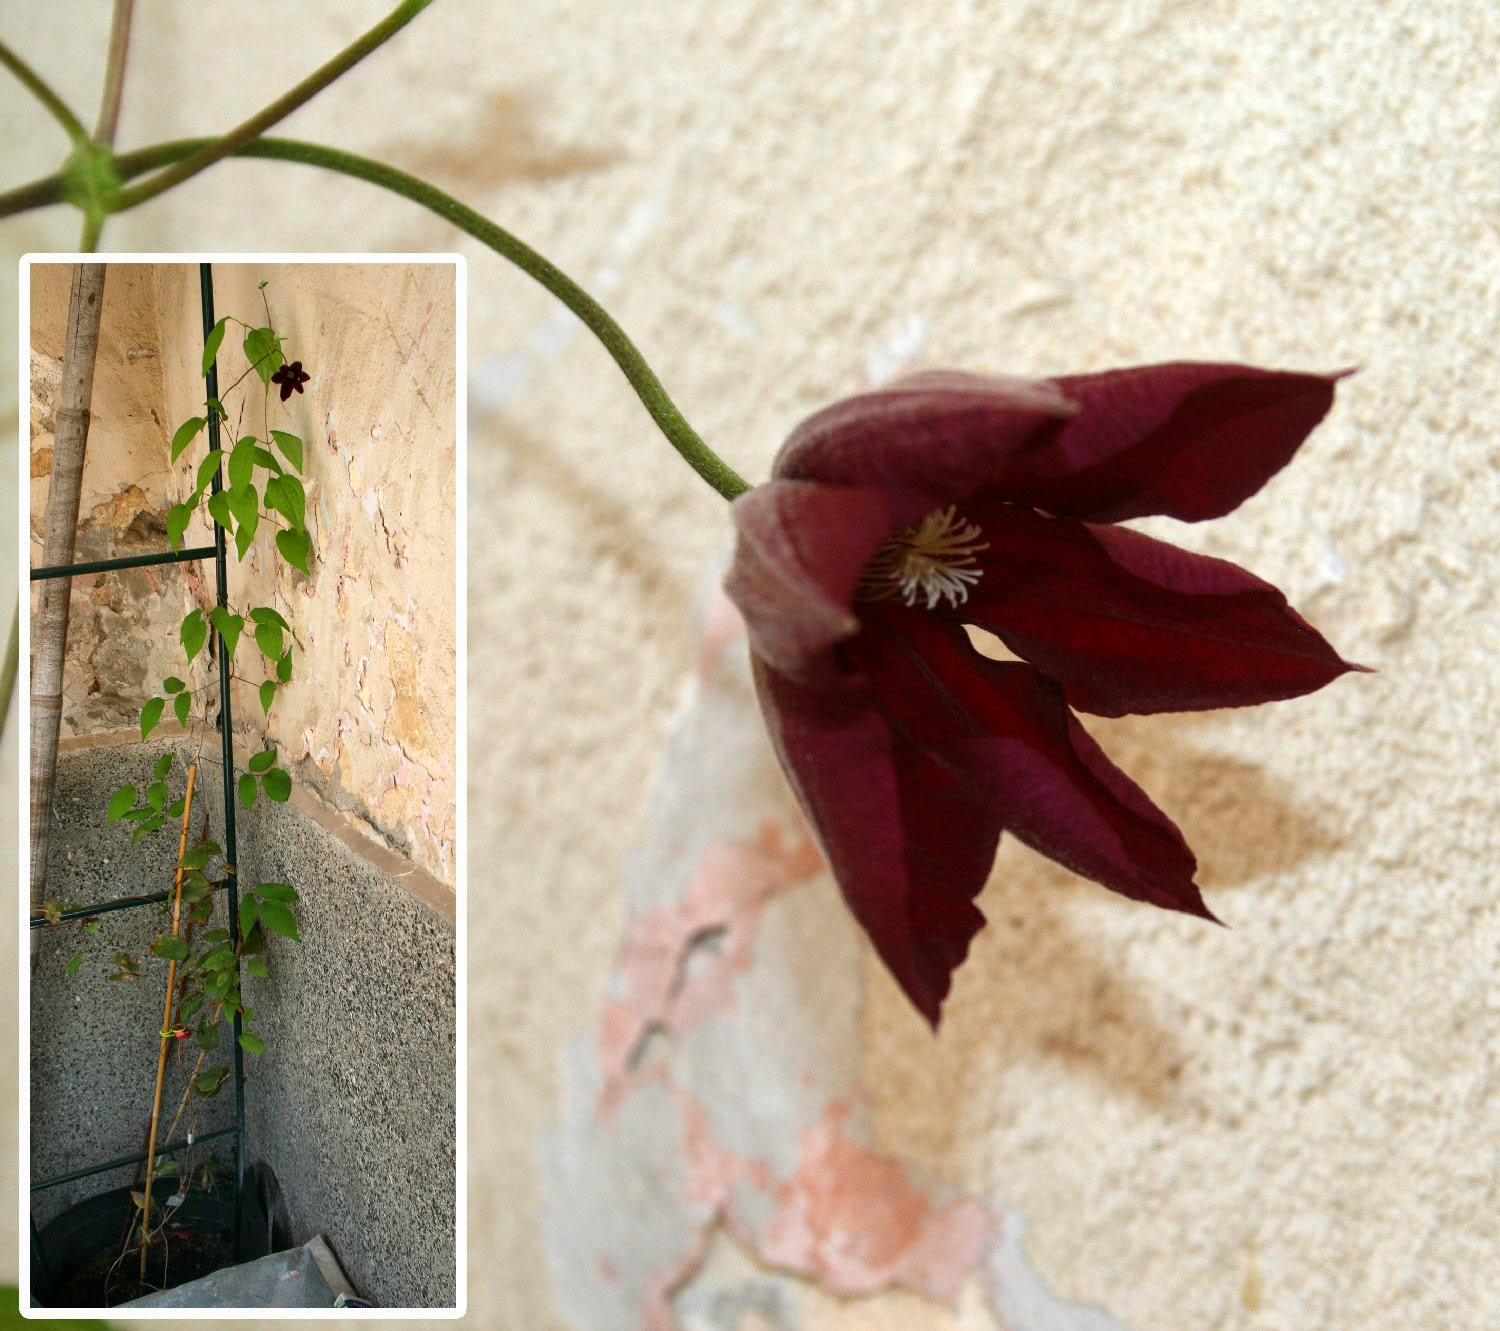 The Clematis is flowering again